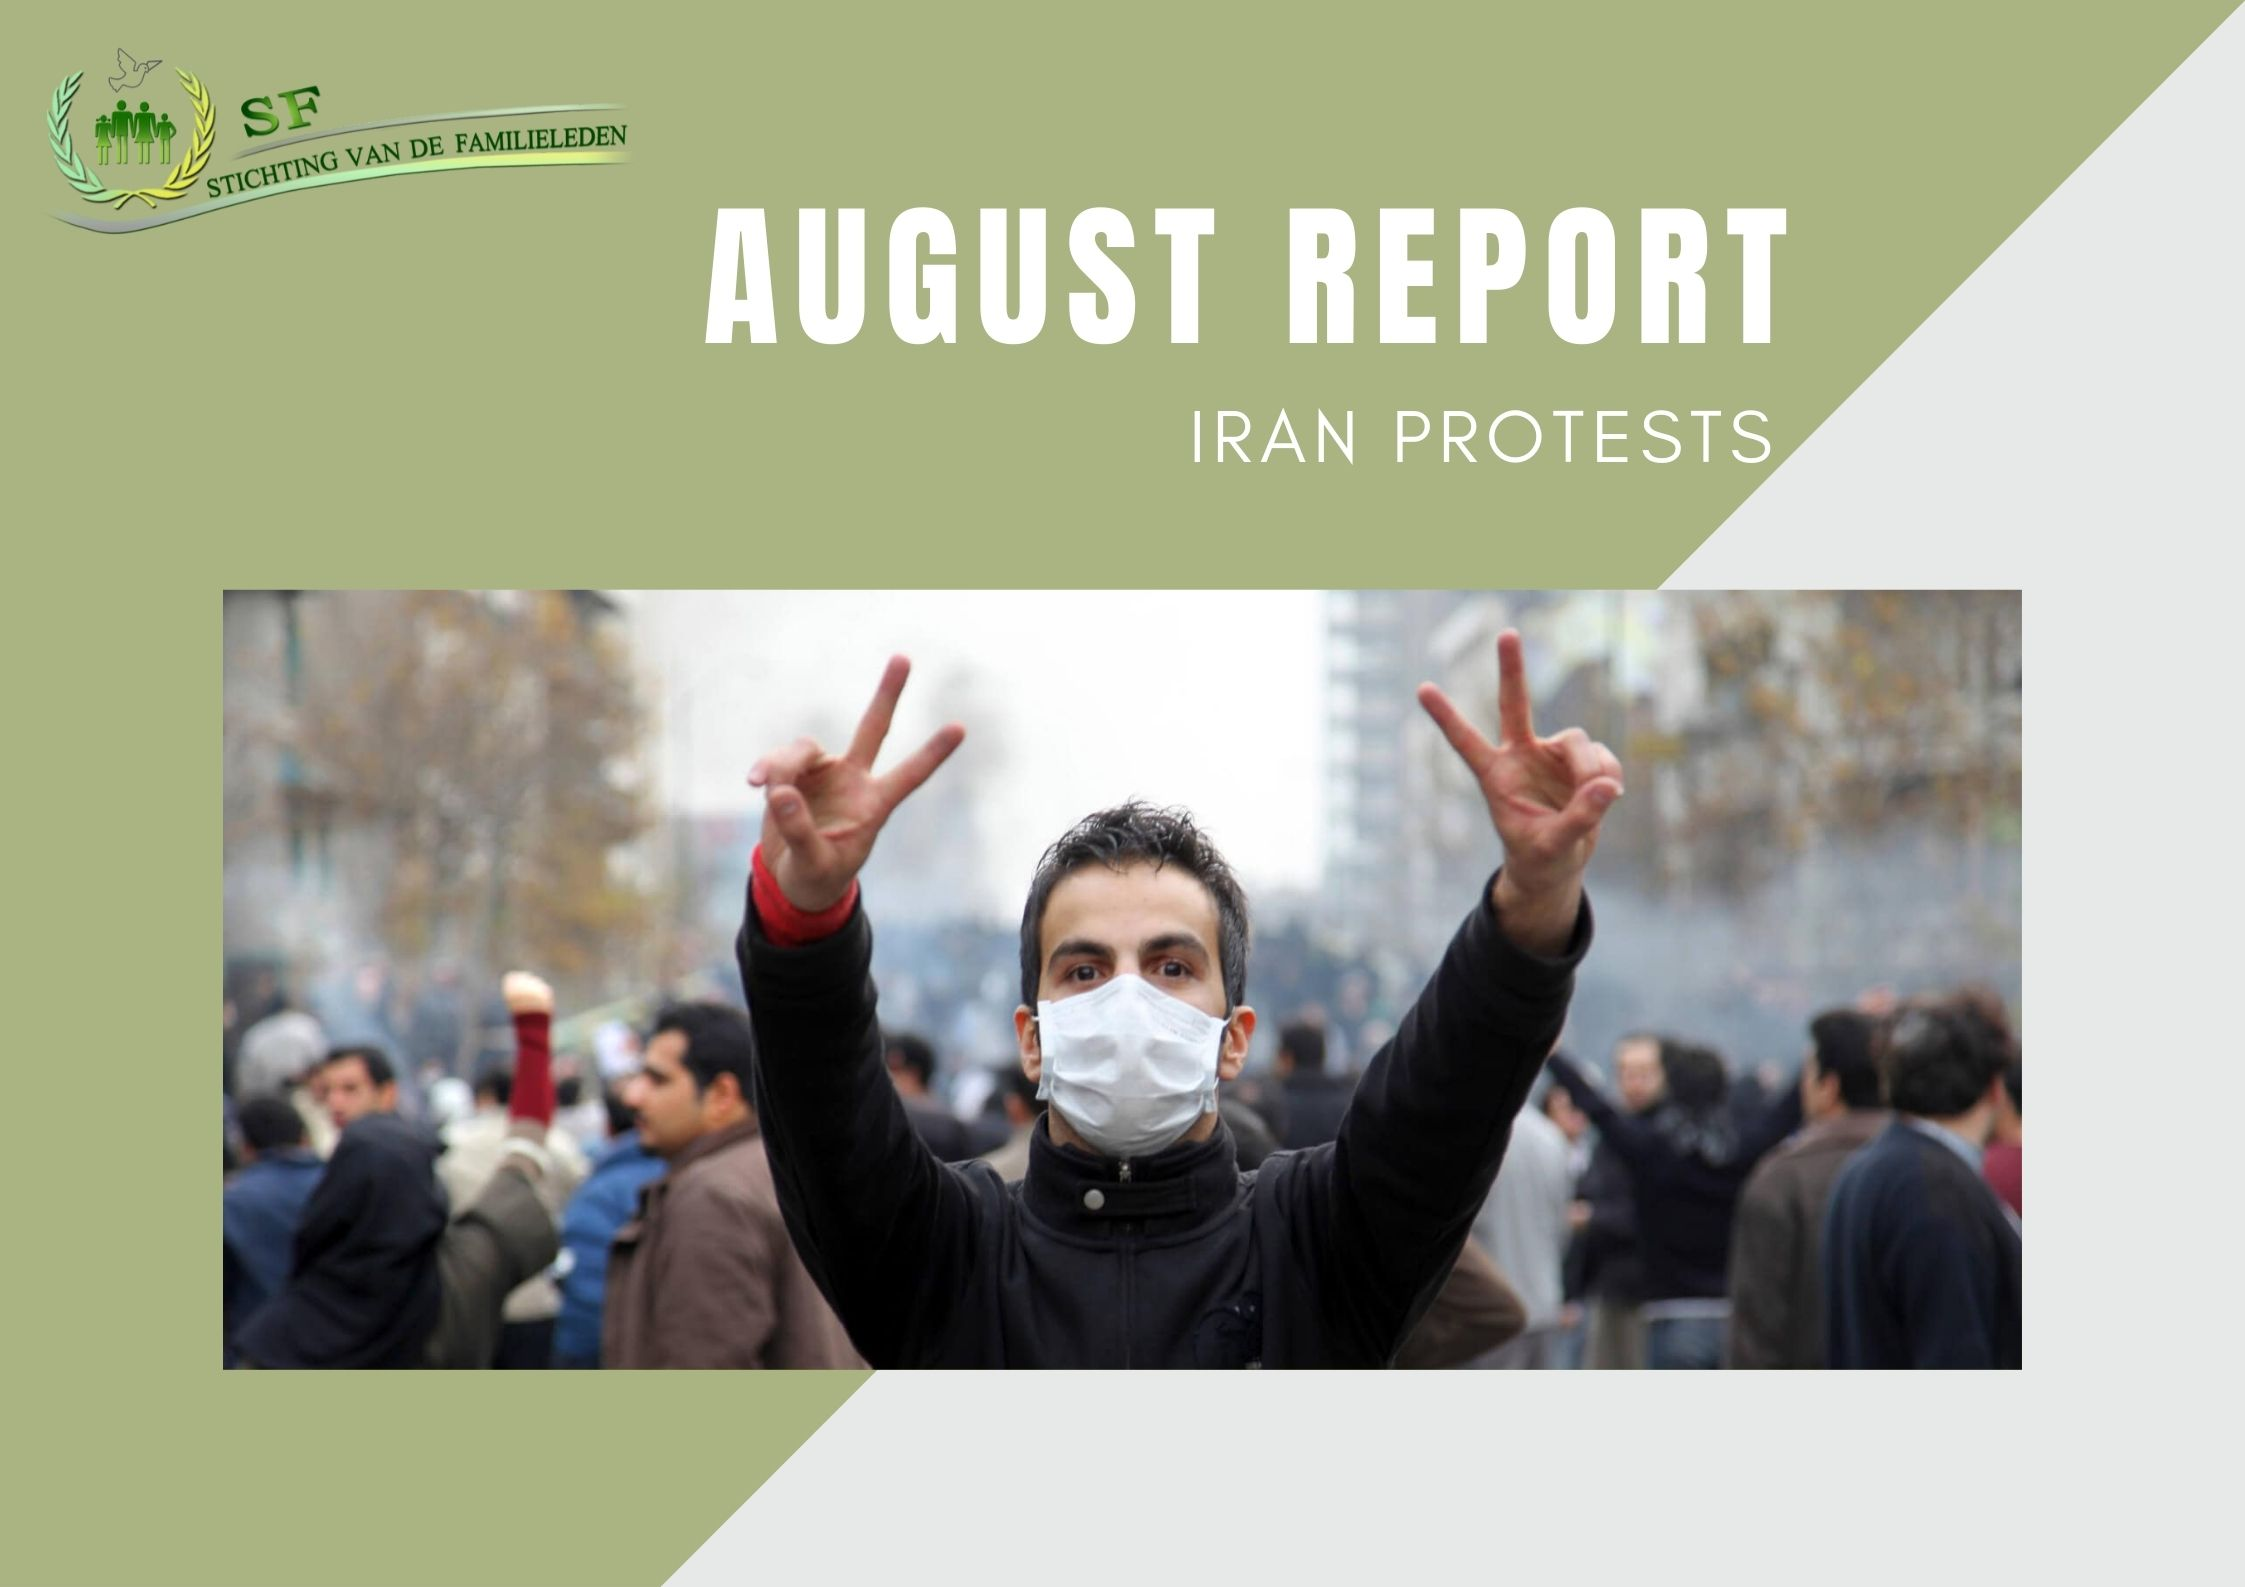 August report - protests in Iran